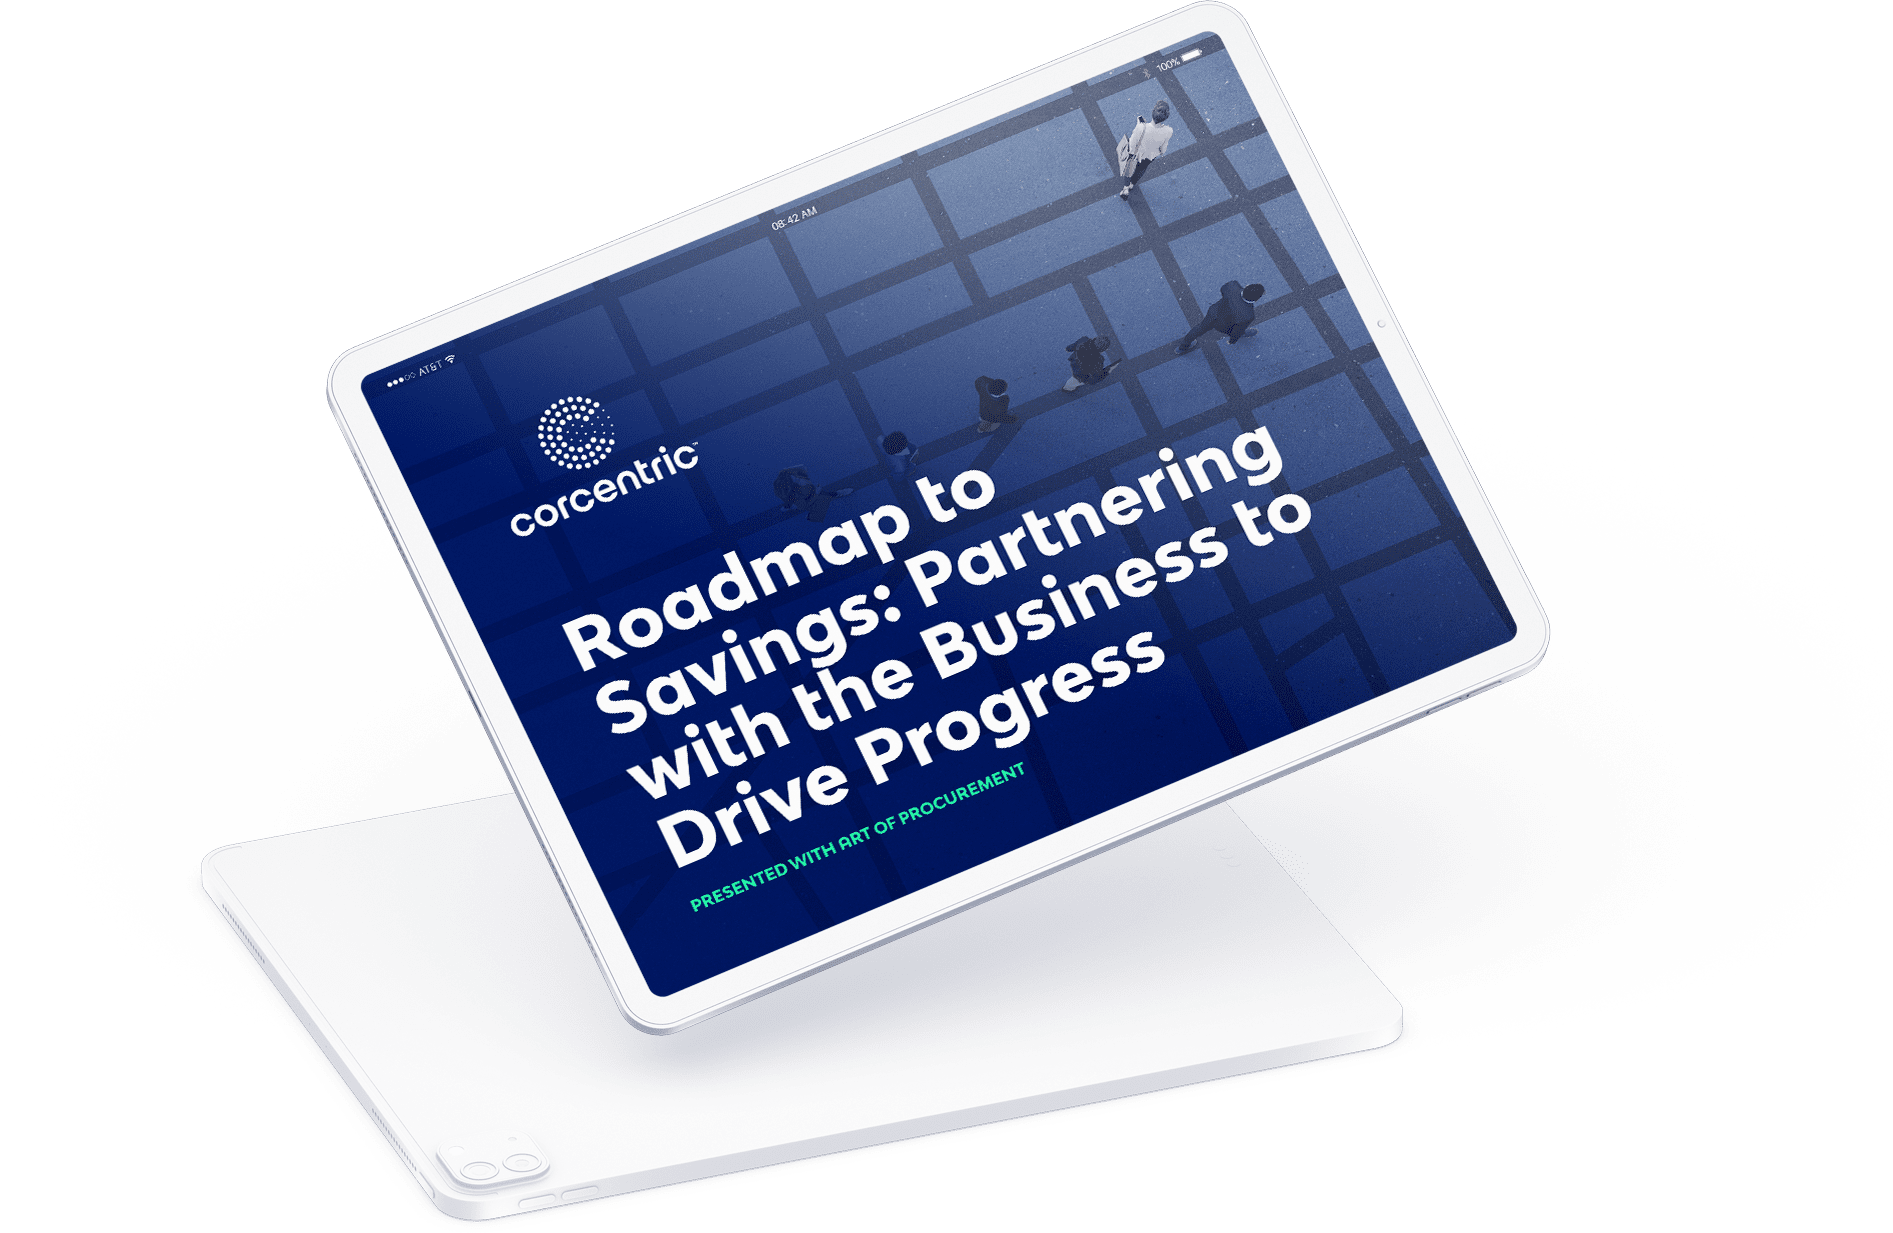 Roadmap to Savings: Partnering with the Business to Drive Progress